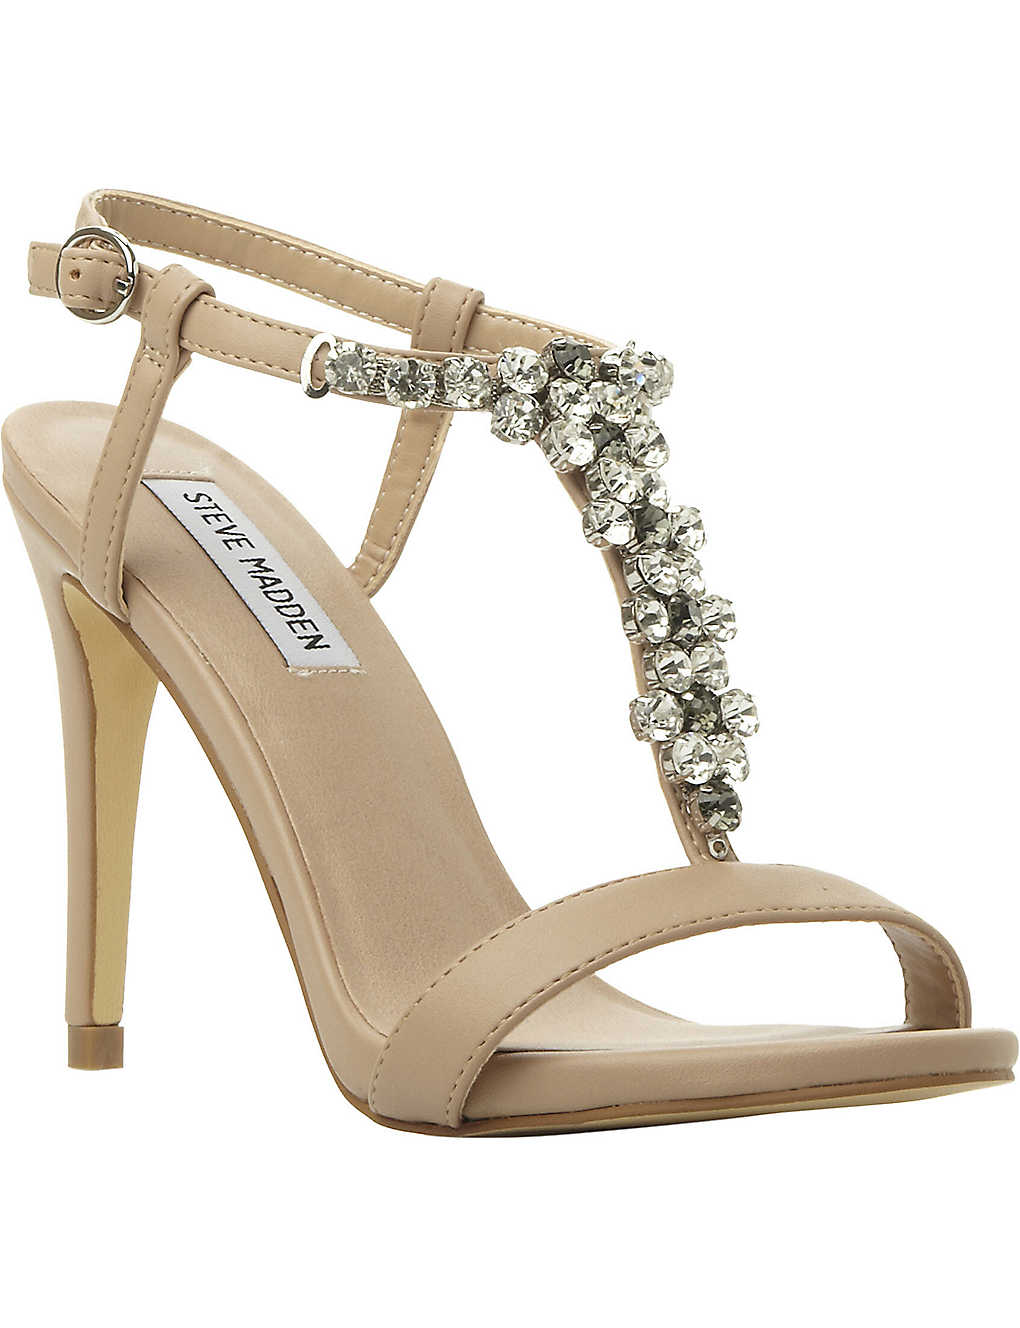 fd622a10fe8 STEVE MADDEN - Alizza jewelled heeled sandal